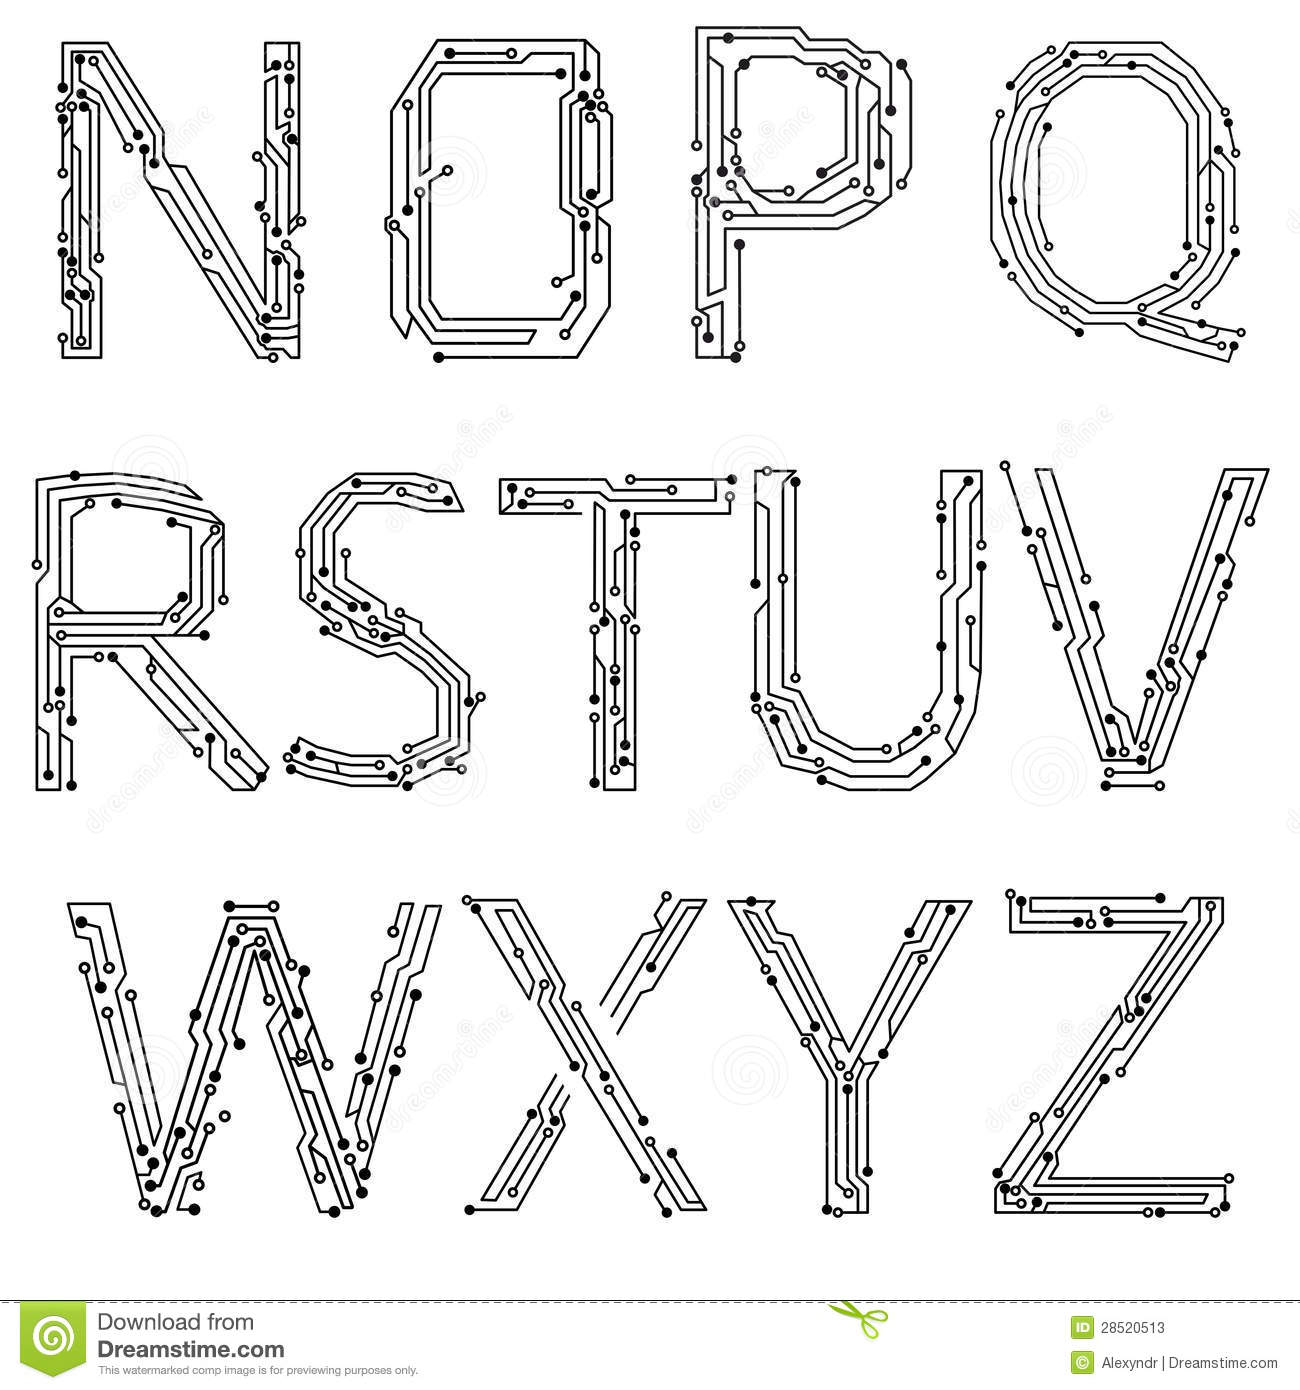 Alphabet Of Printed Circuit Boards Stock Vector